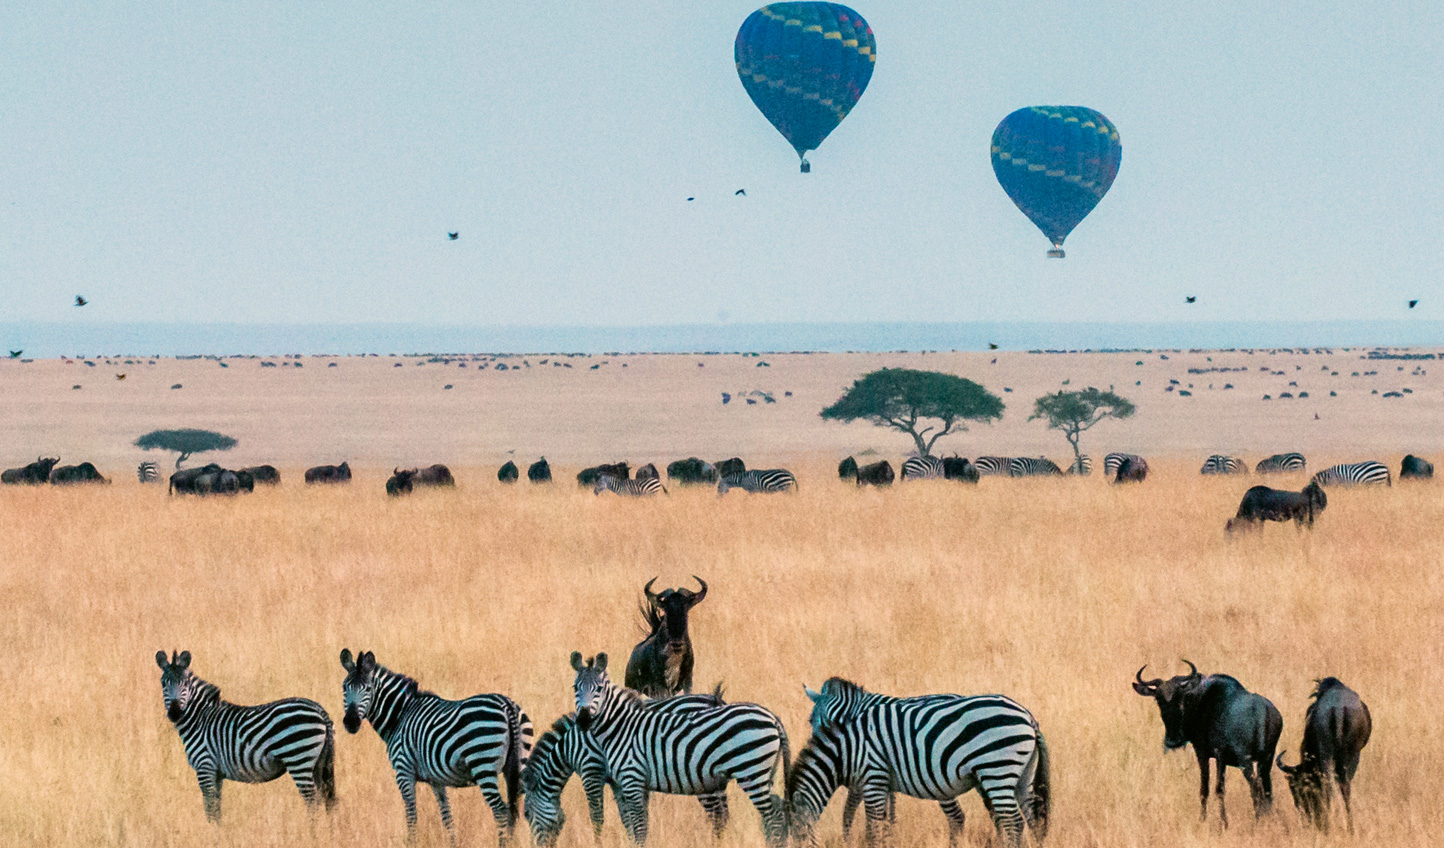 Hop in your hot air balloon above the Maasai Mara